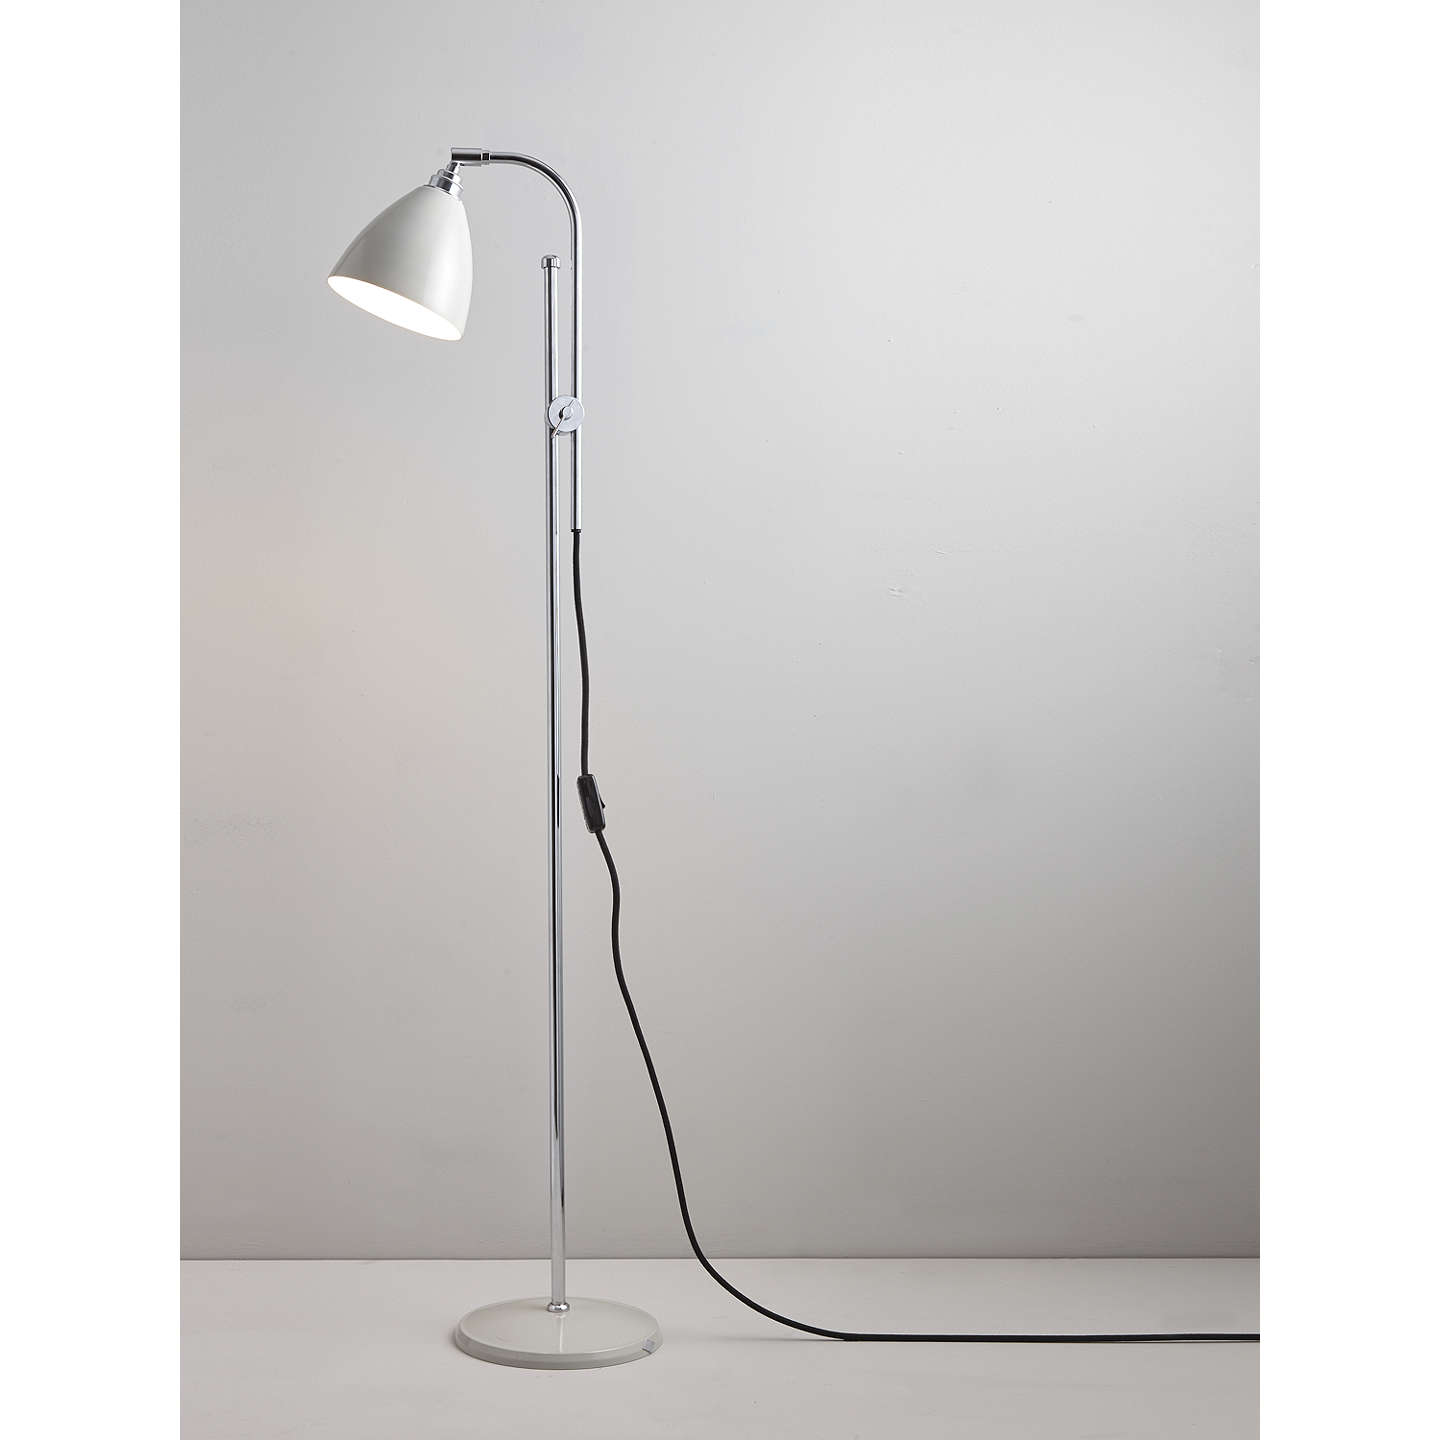 Original btc task floor lamp putty at john lewis buyoriginal btc task floor lamp putty online at johnlewis mozeypictures Image collections